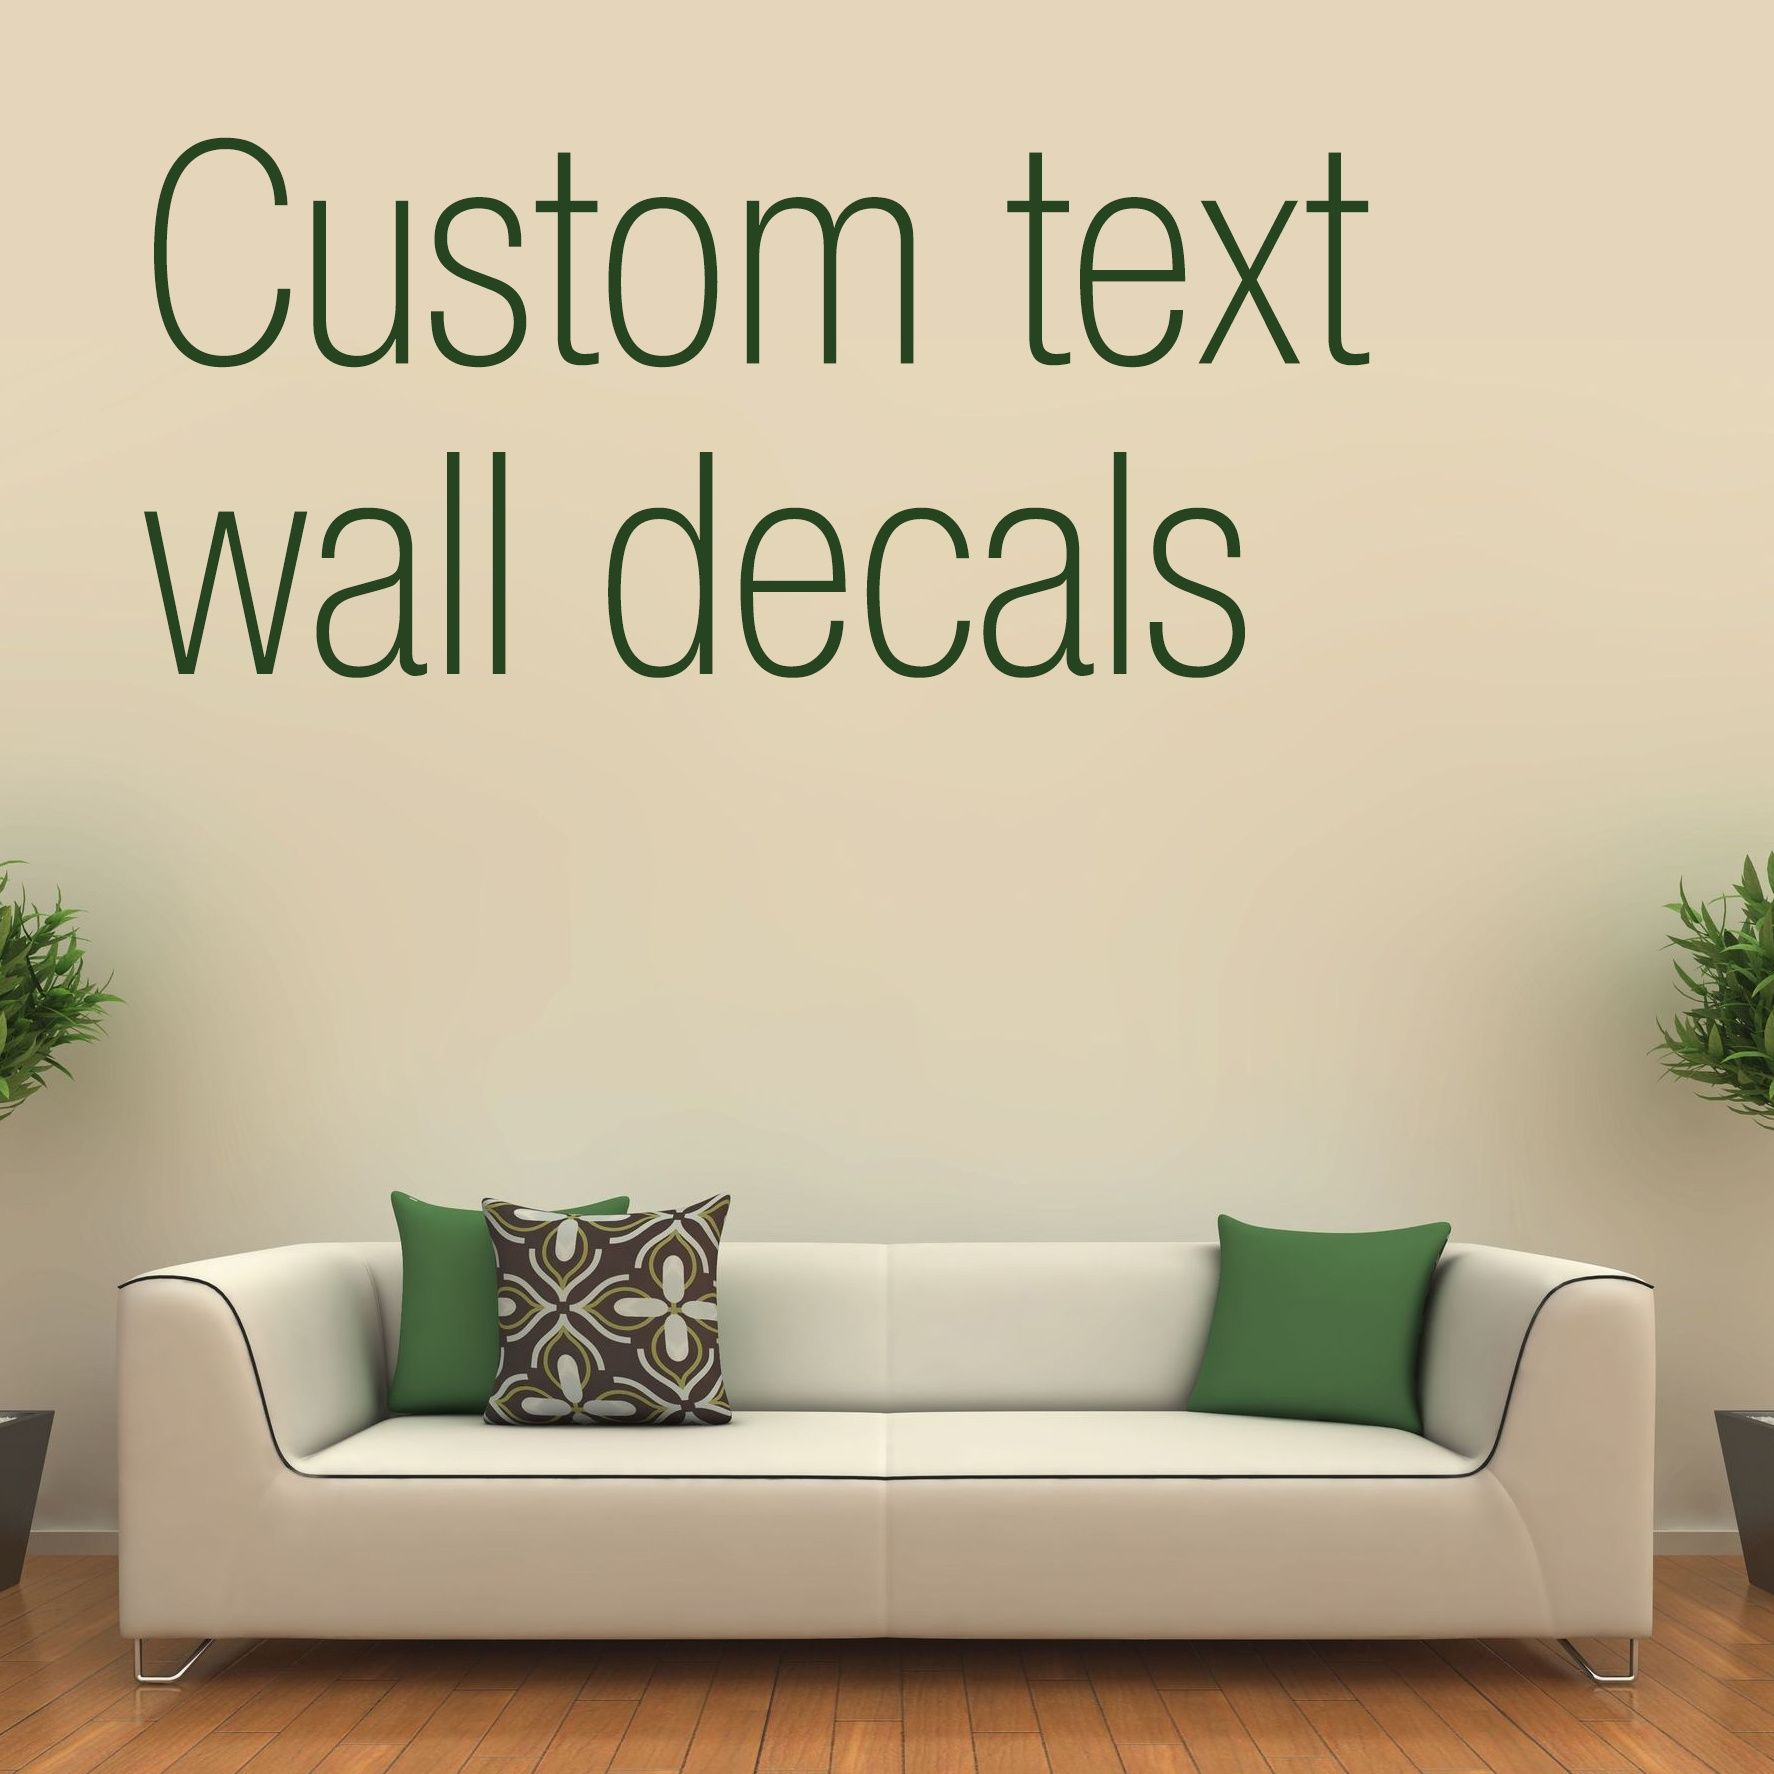 Custom text wall decals stickers onmyhome new york city sticker tenstickers